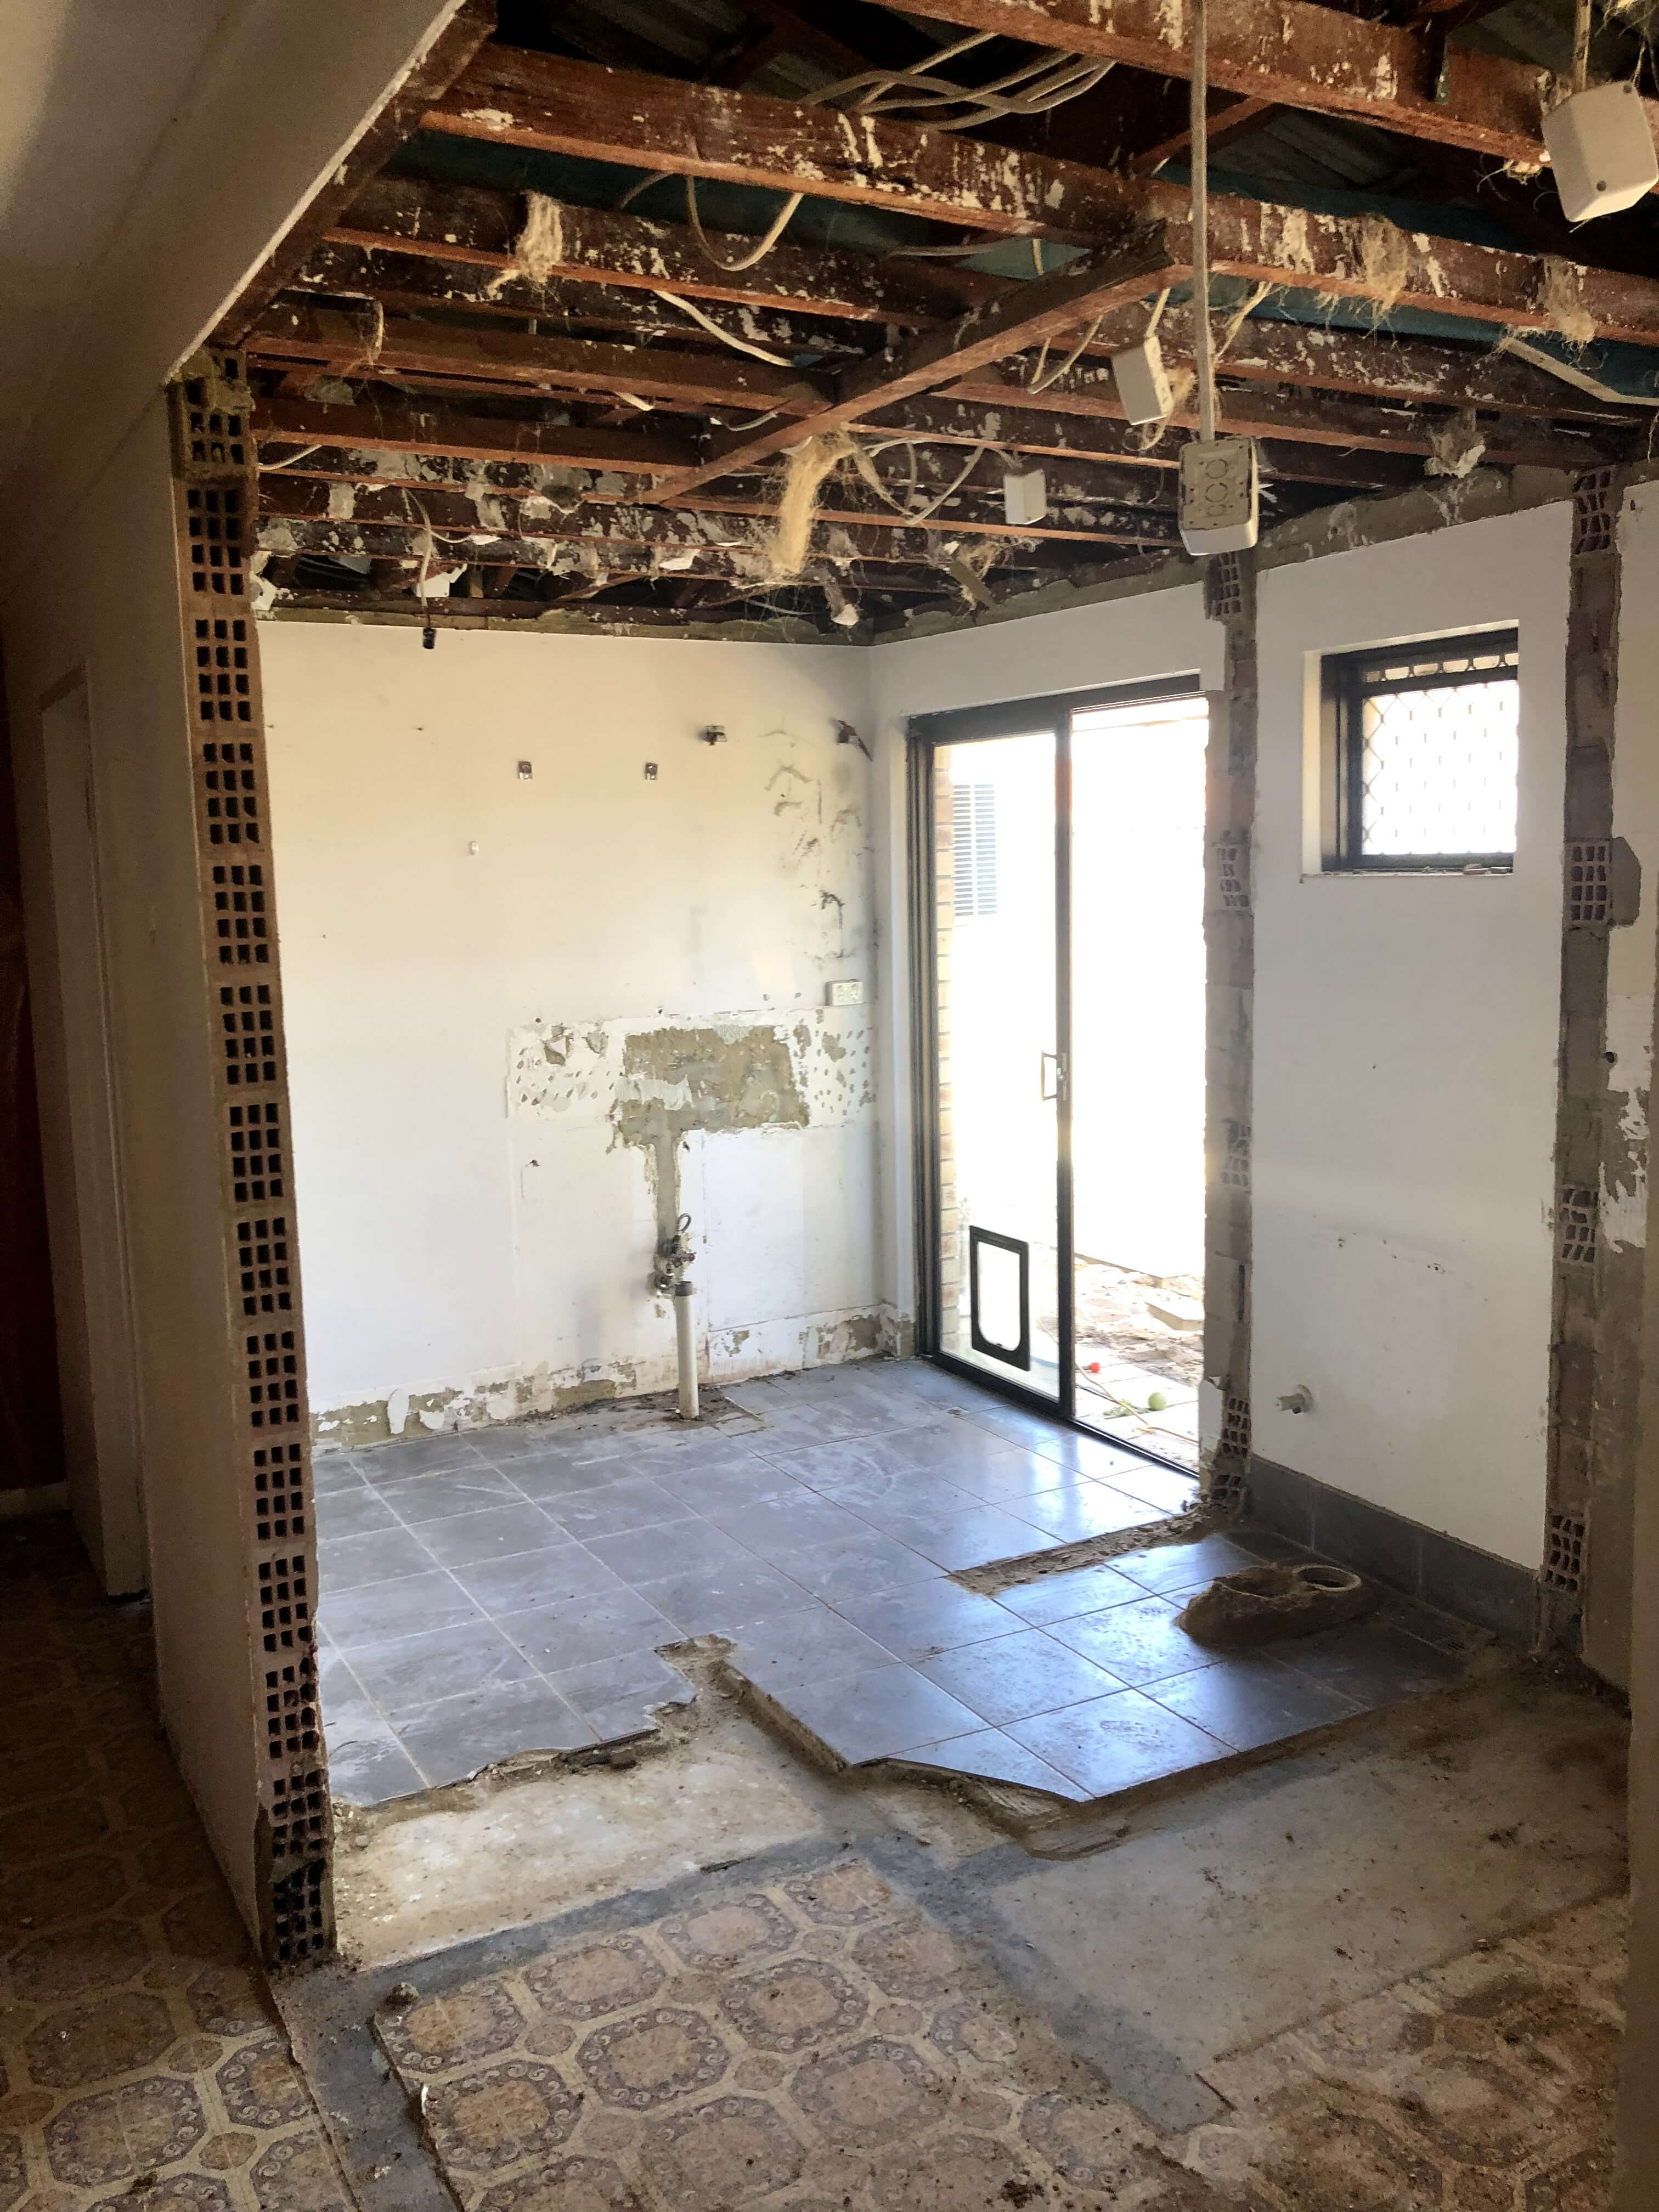 SHELLEY KITCHEN REMODEL STRUCTURAL WALLS REMOVED